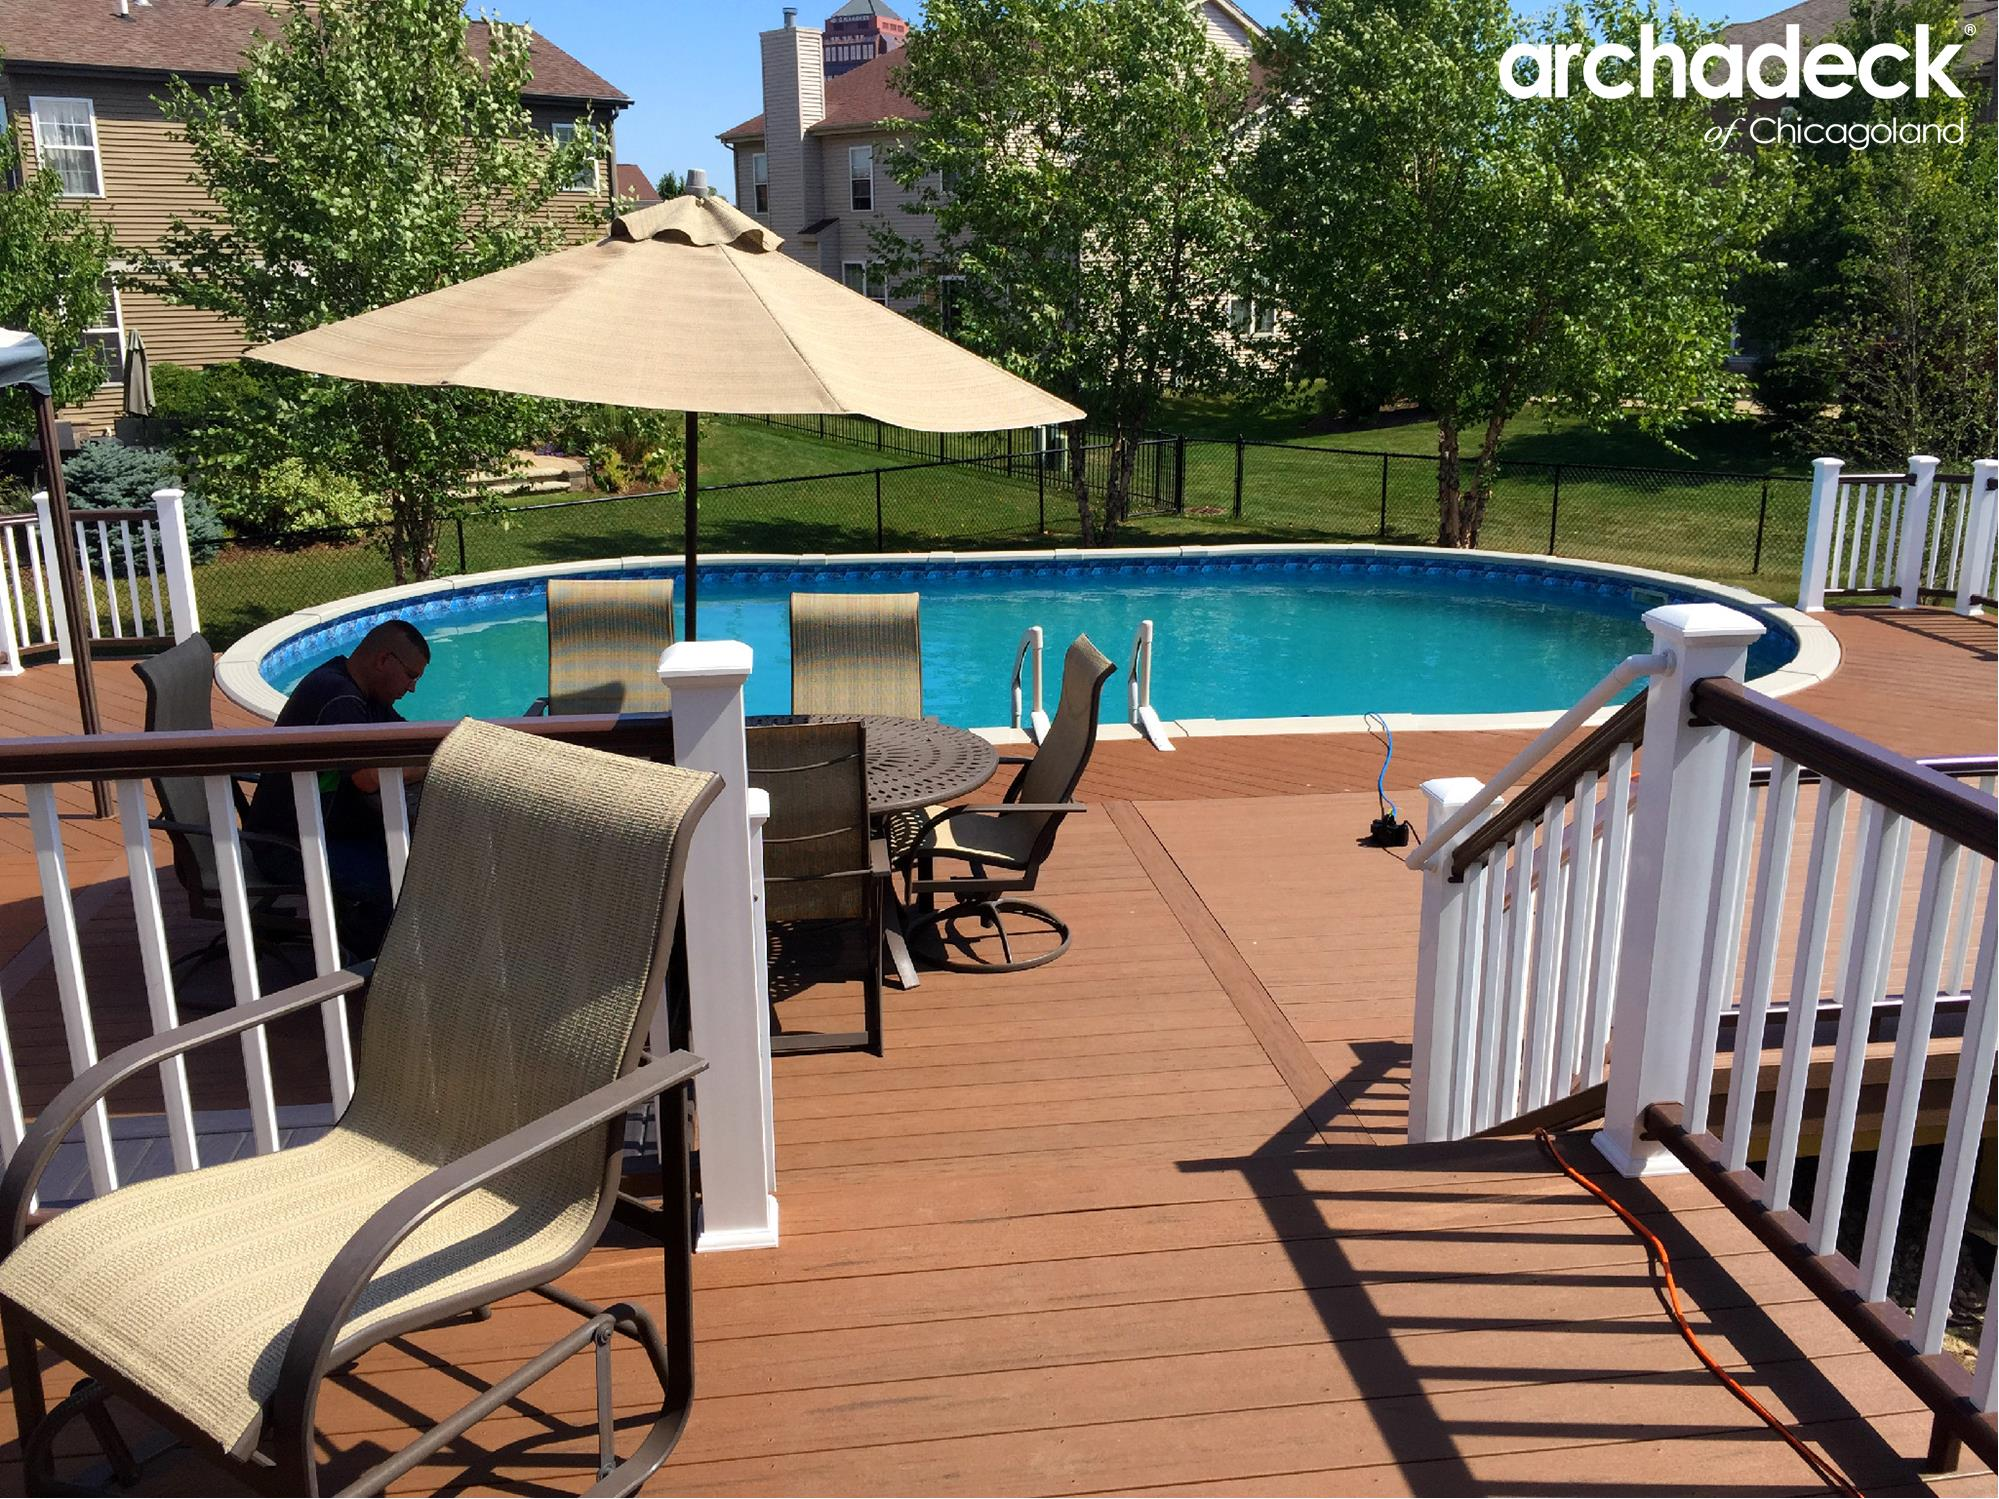 Pool deck ideas for chicagoland homeowners archadeck for Pool design deck